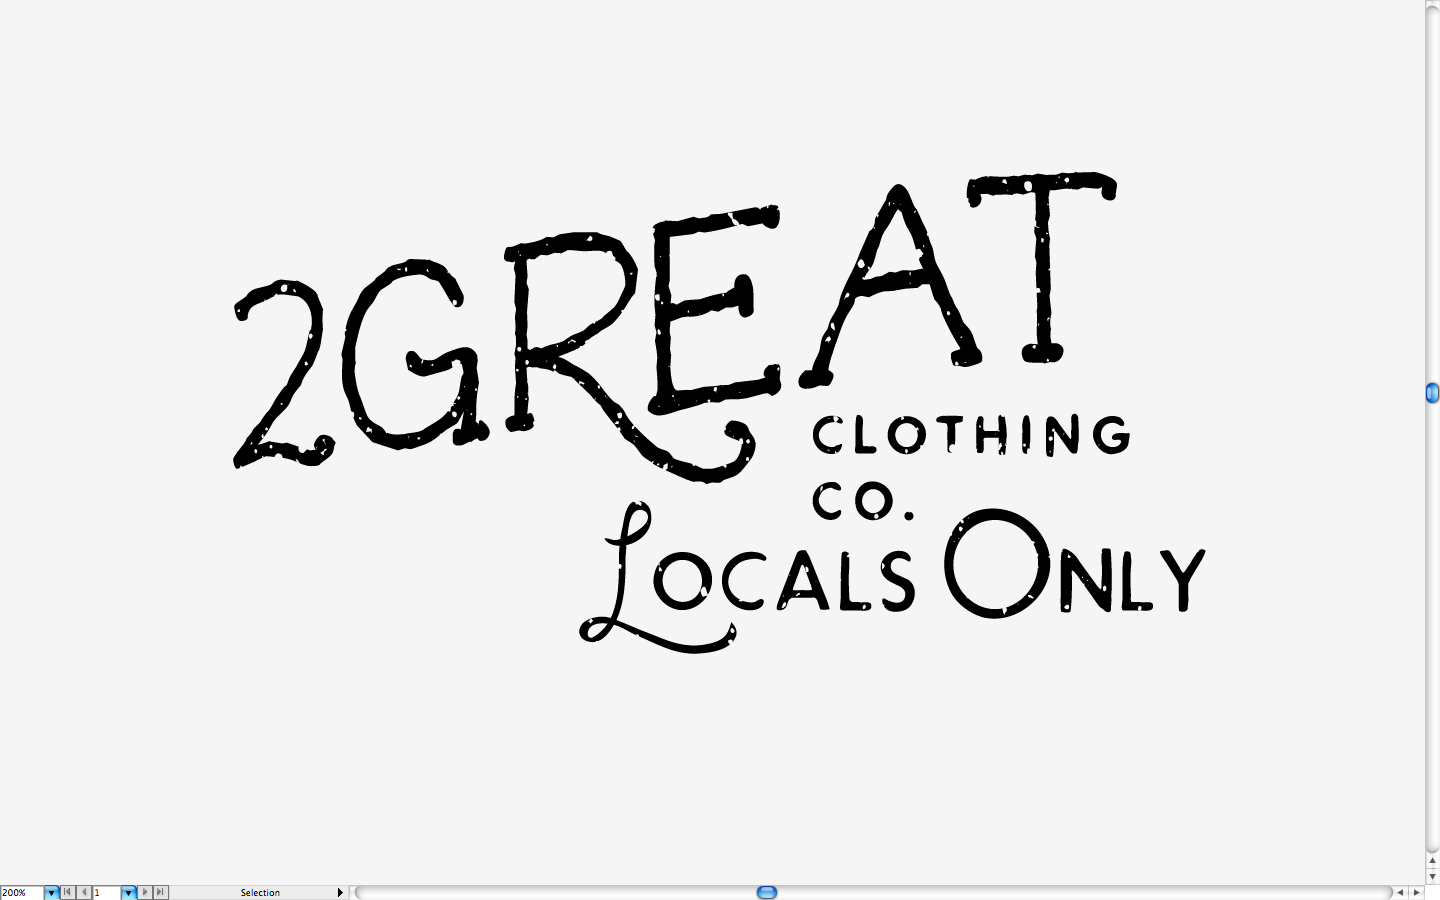 2Great Clothing Co. - image 6 - student project